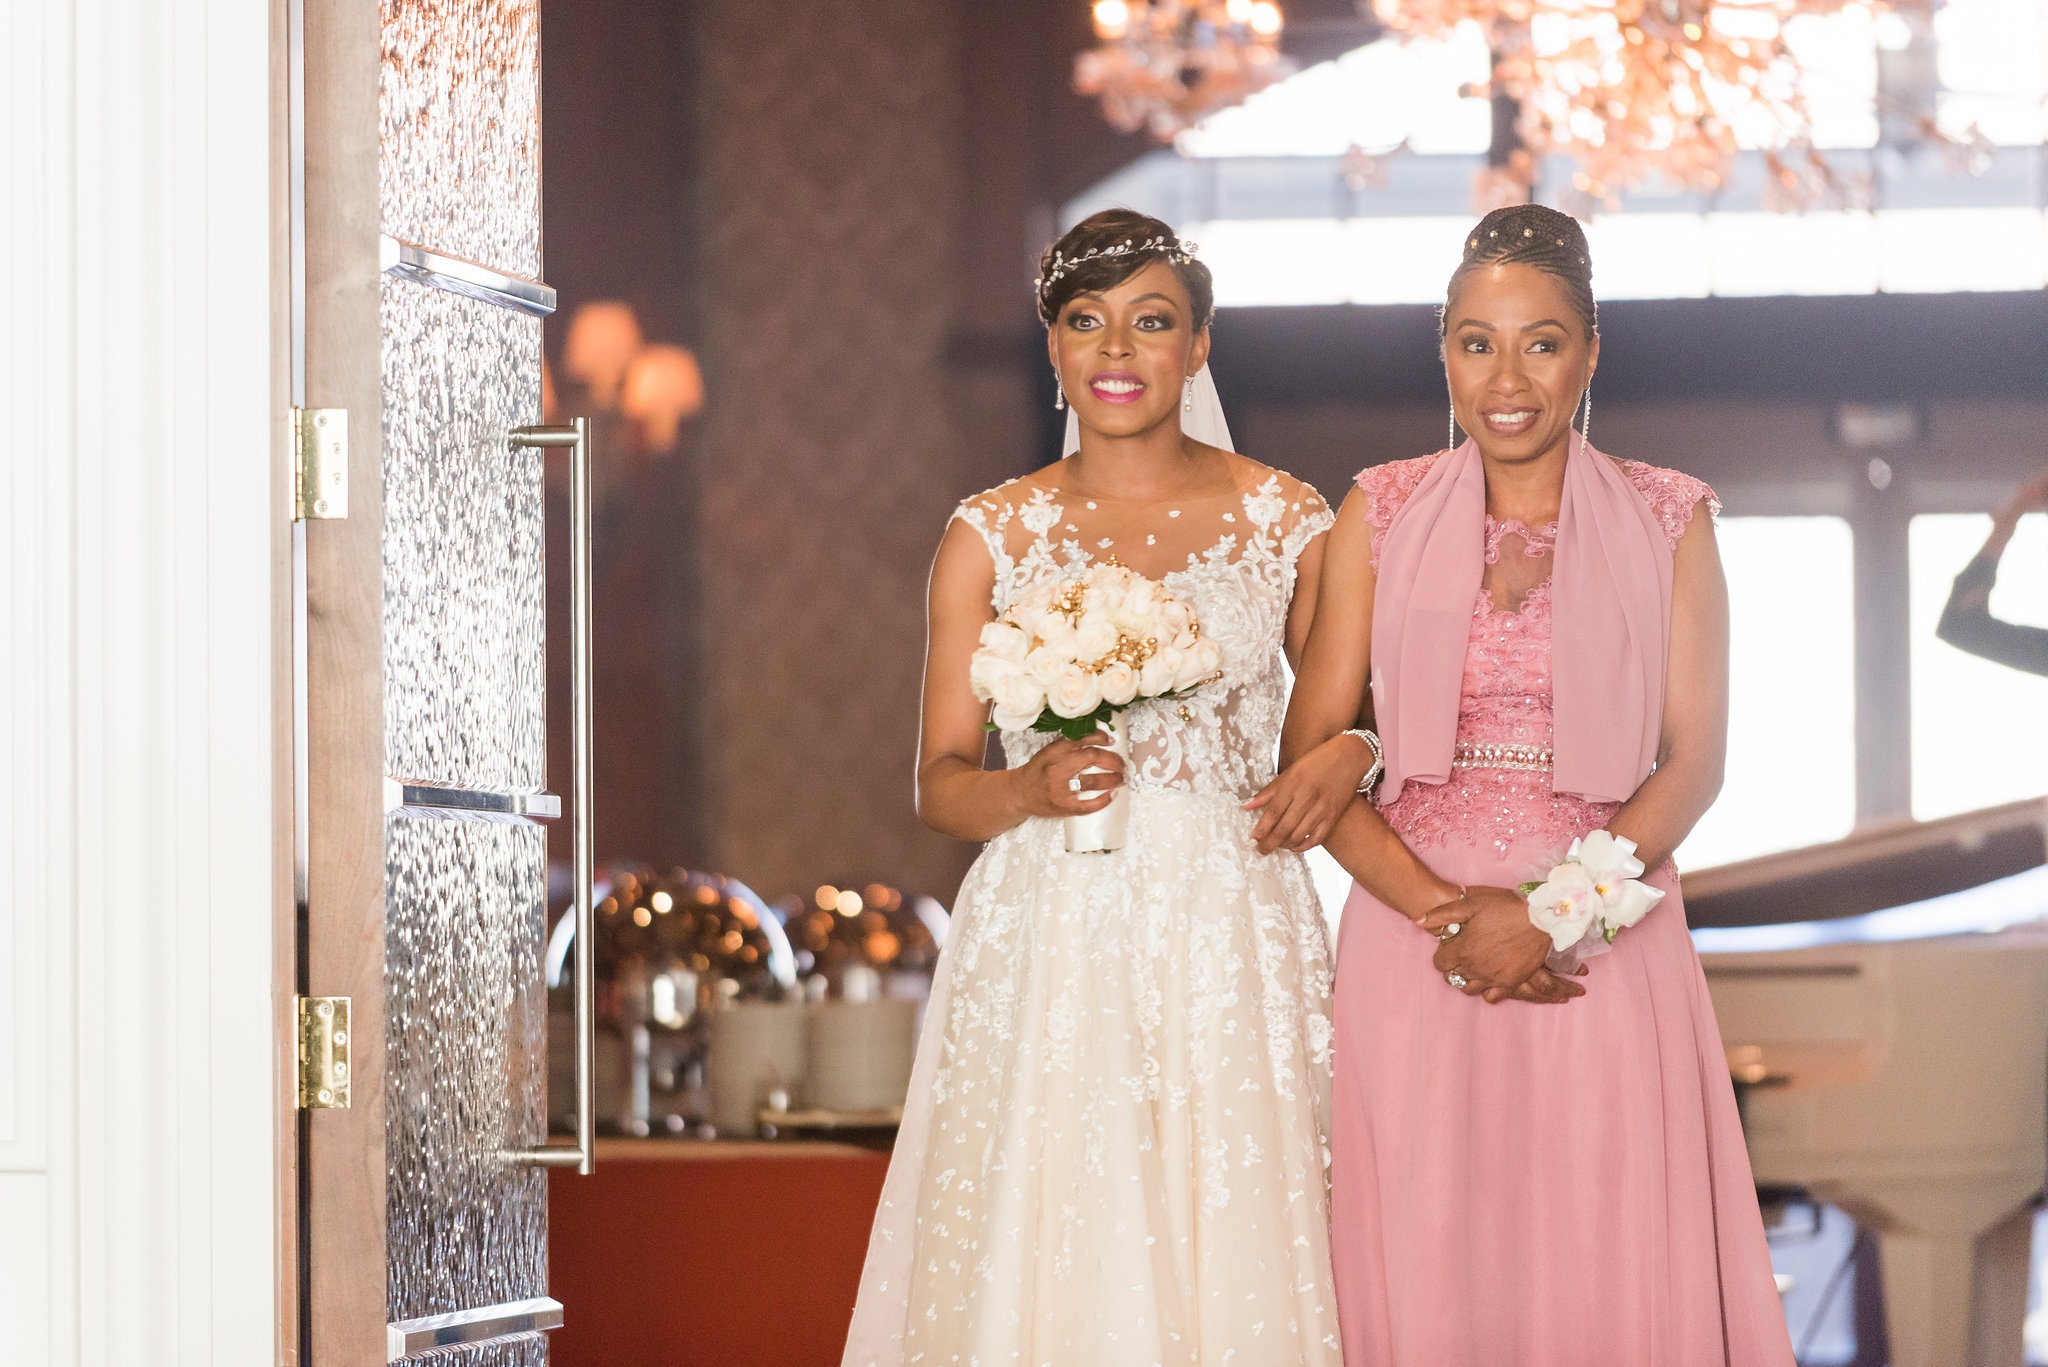 wedding mother and daughter.jpg